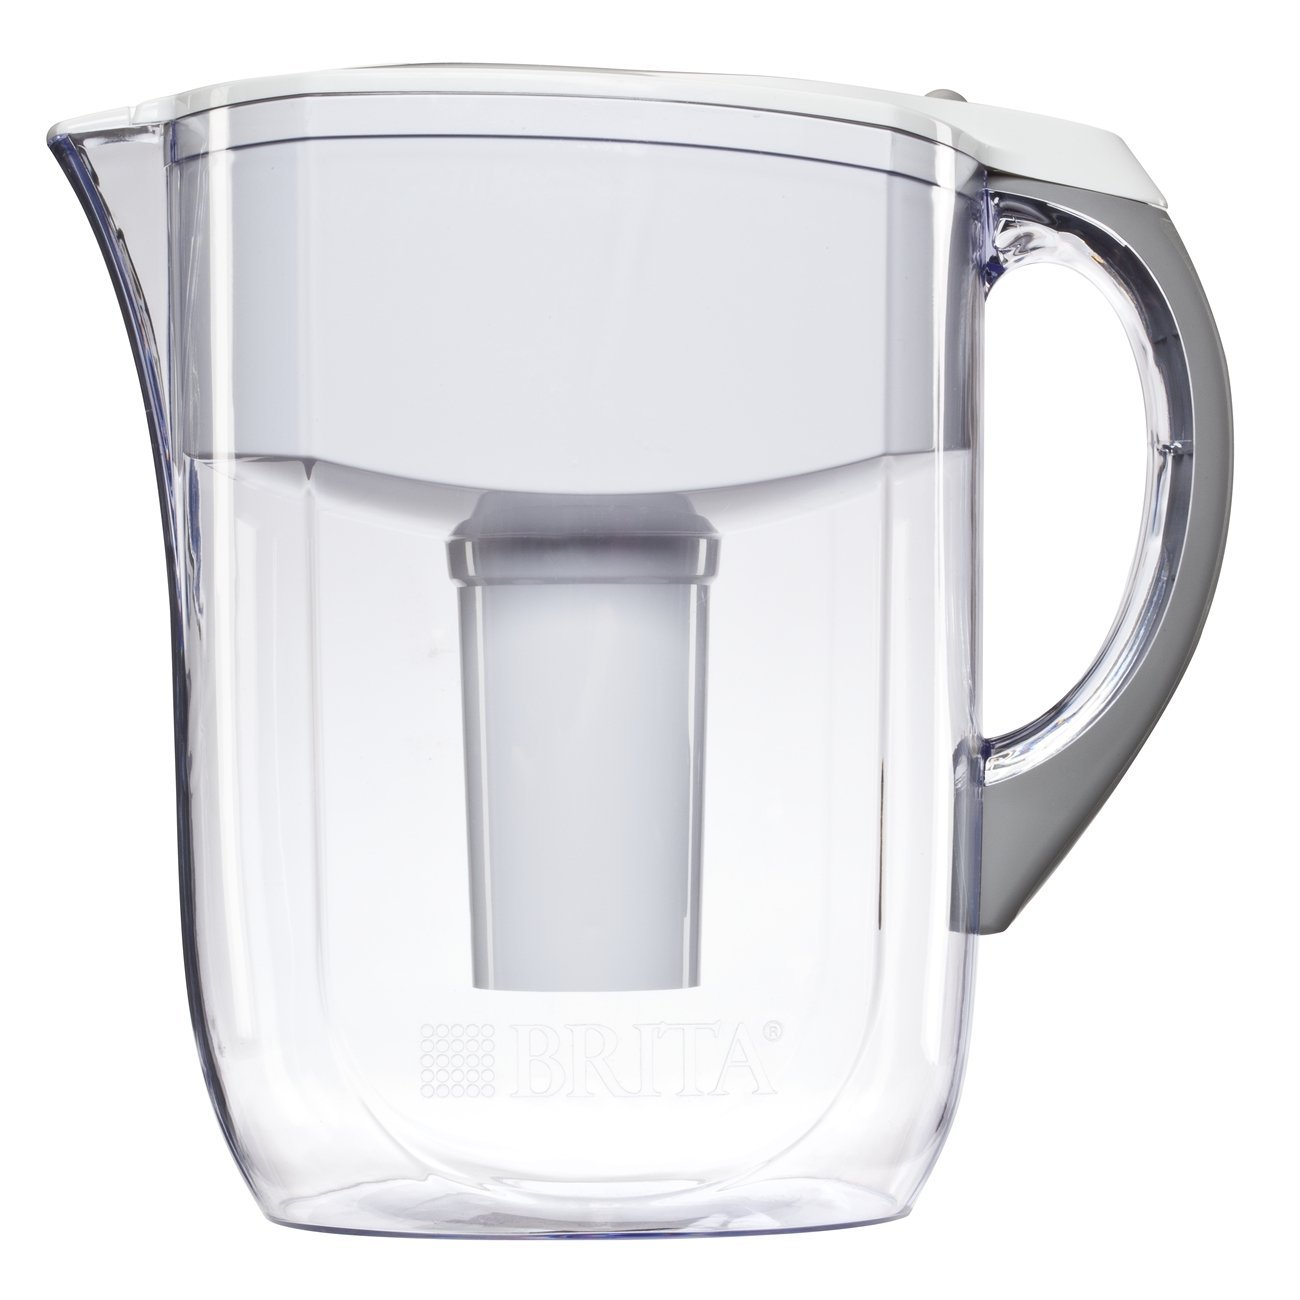 brita grand water filter pitcher white gizmos gadgets. Black Bedroom Furniture Sets. Home Design Ideas